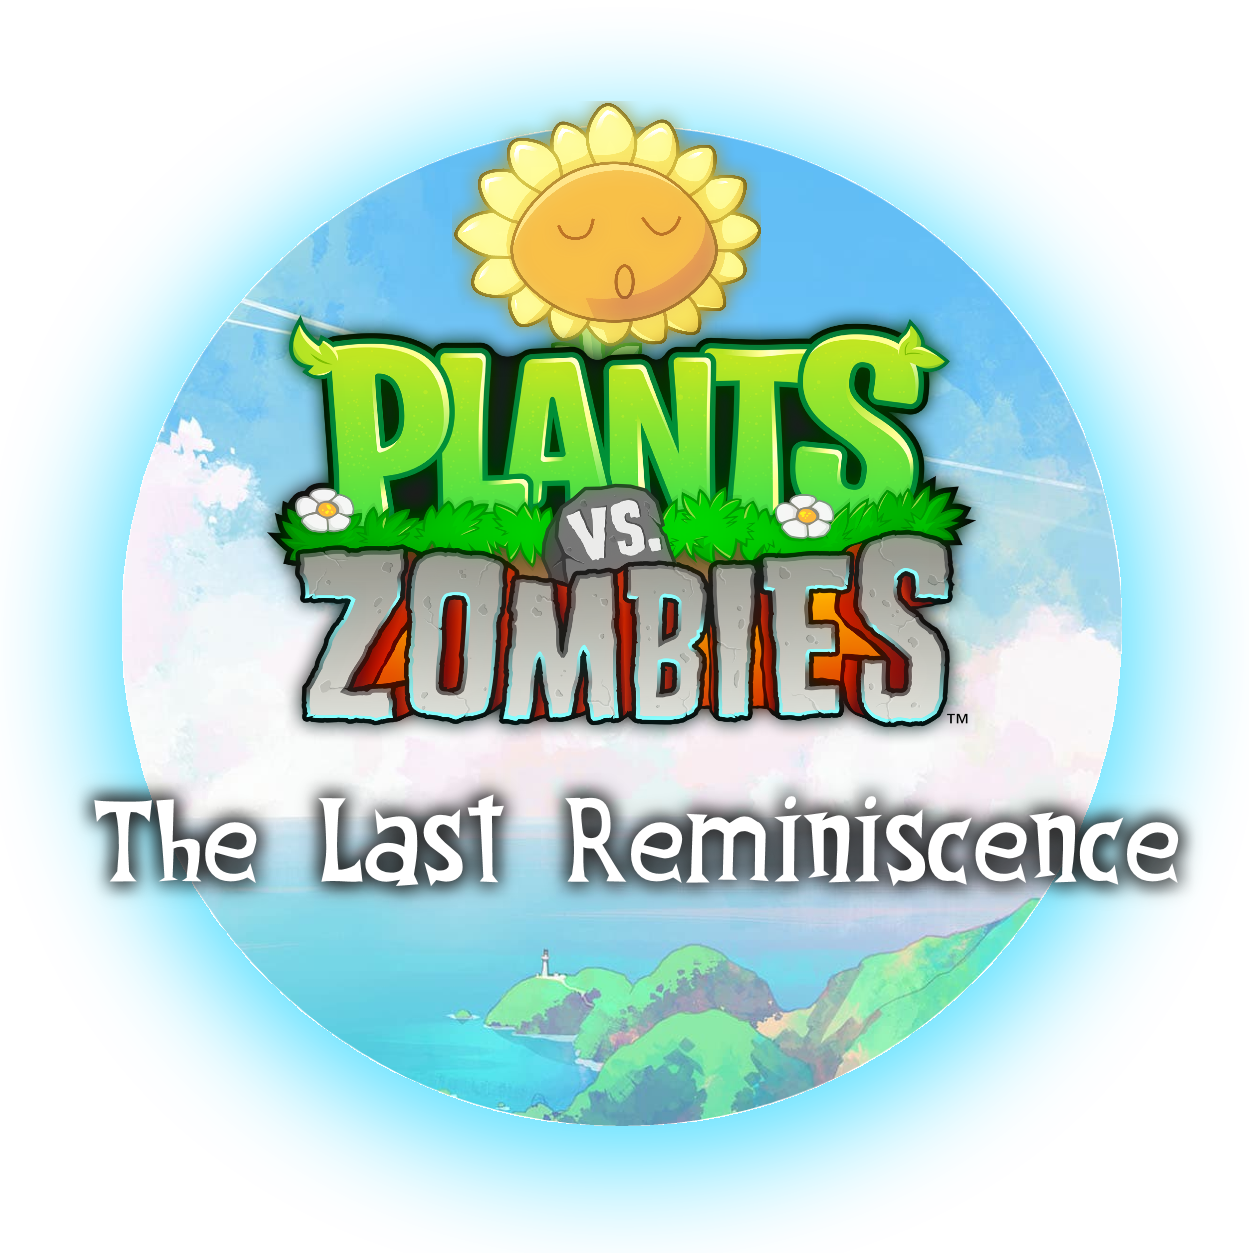 Plants vs zombies the. Memories clipart reminiscence